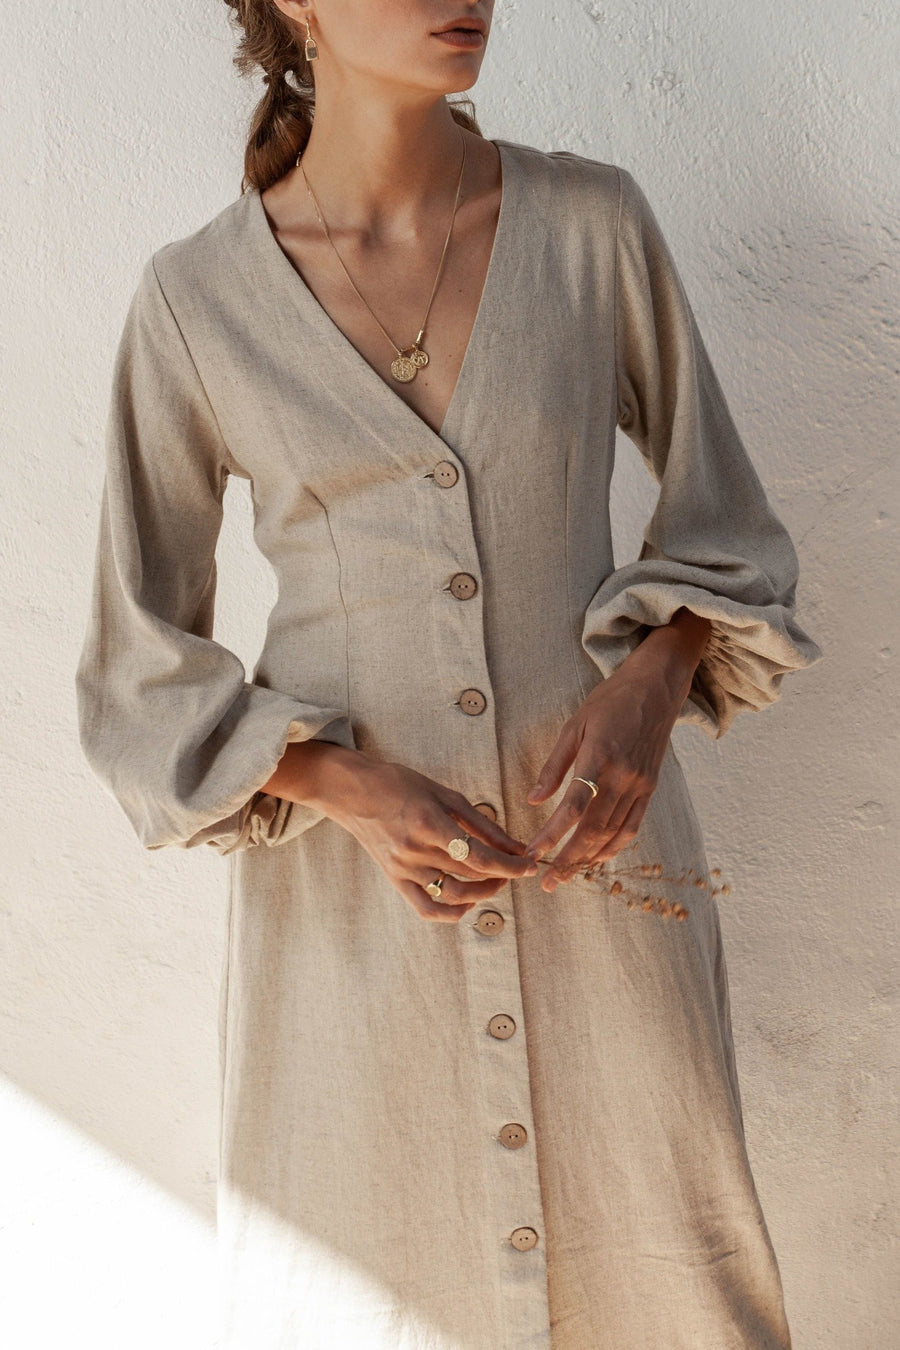 Harlow Dress - Natural Fawn - Linen Blend